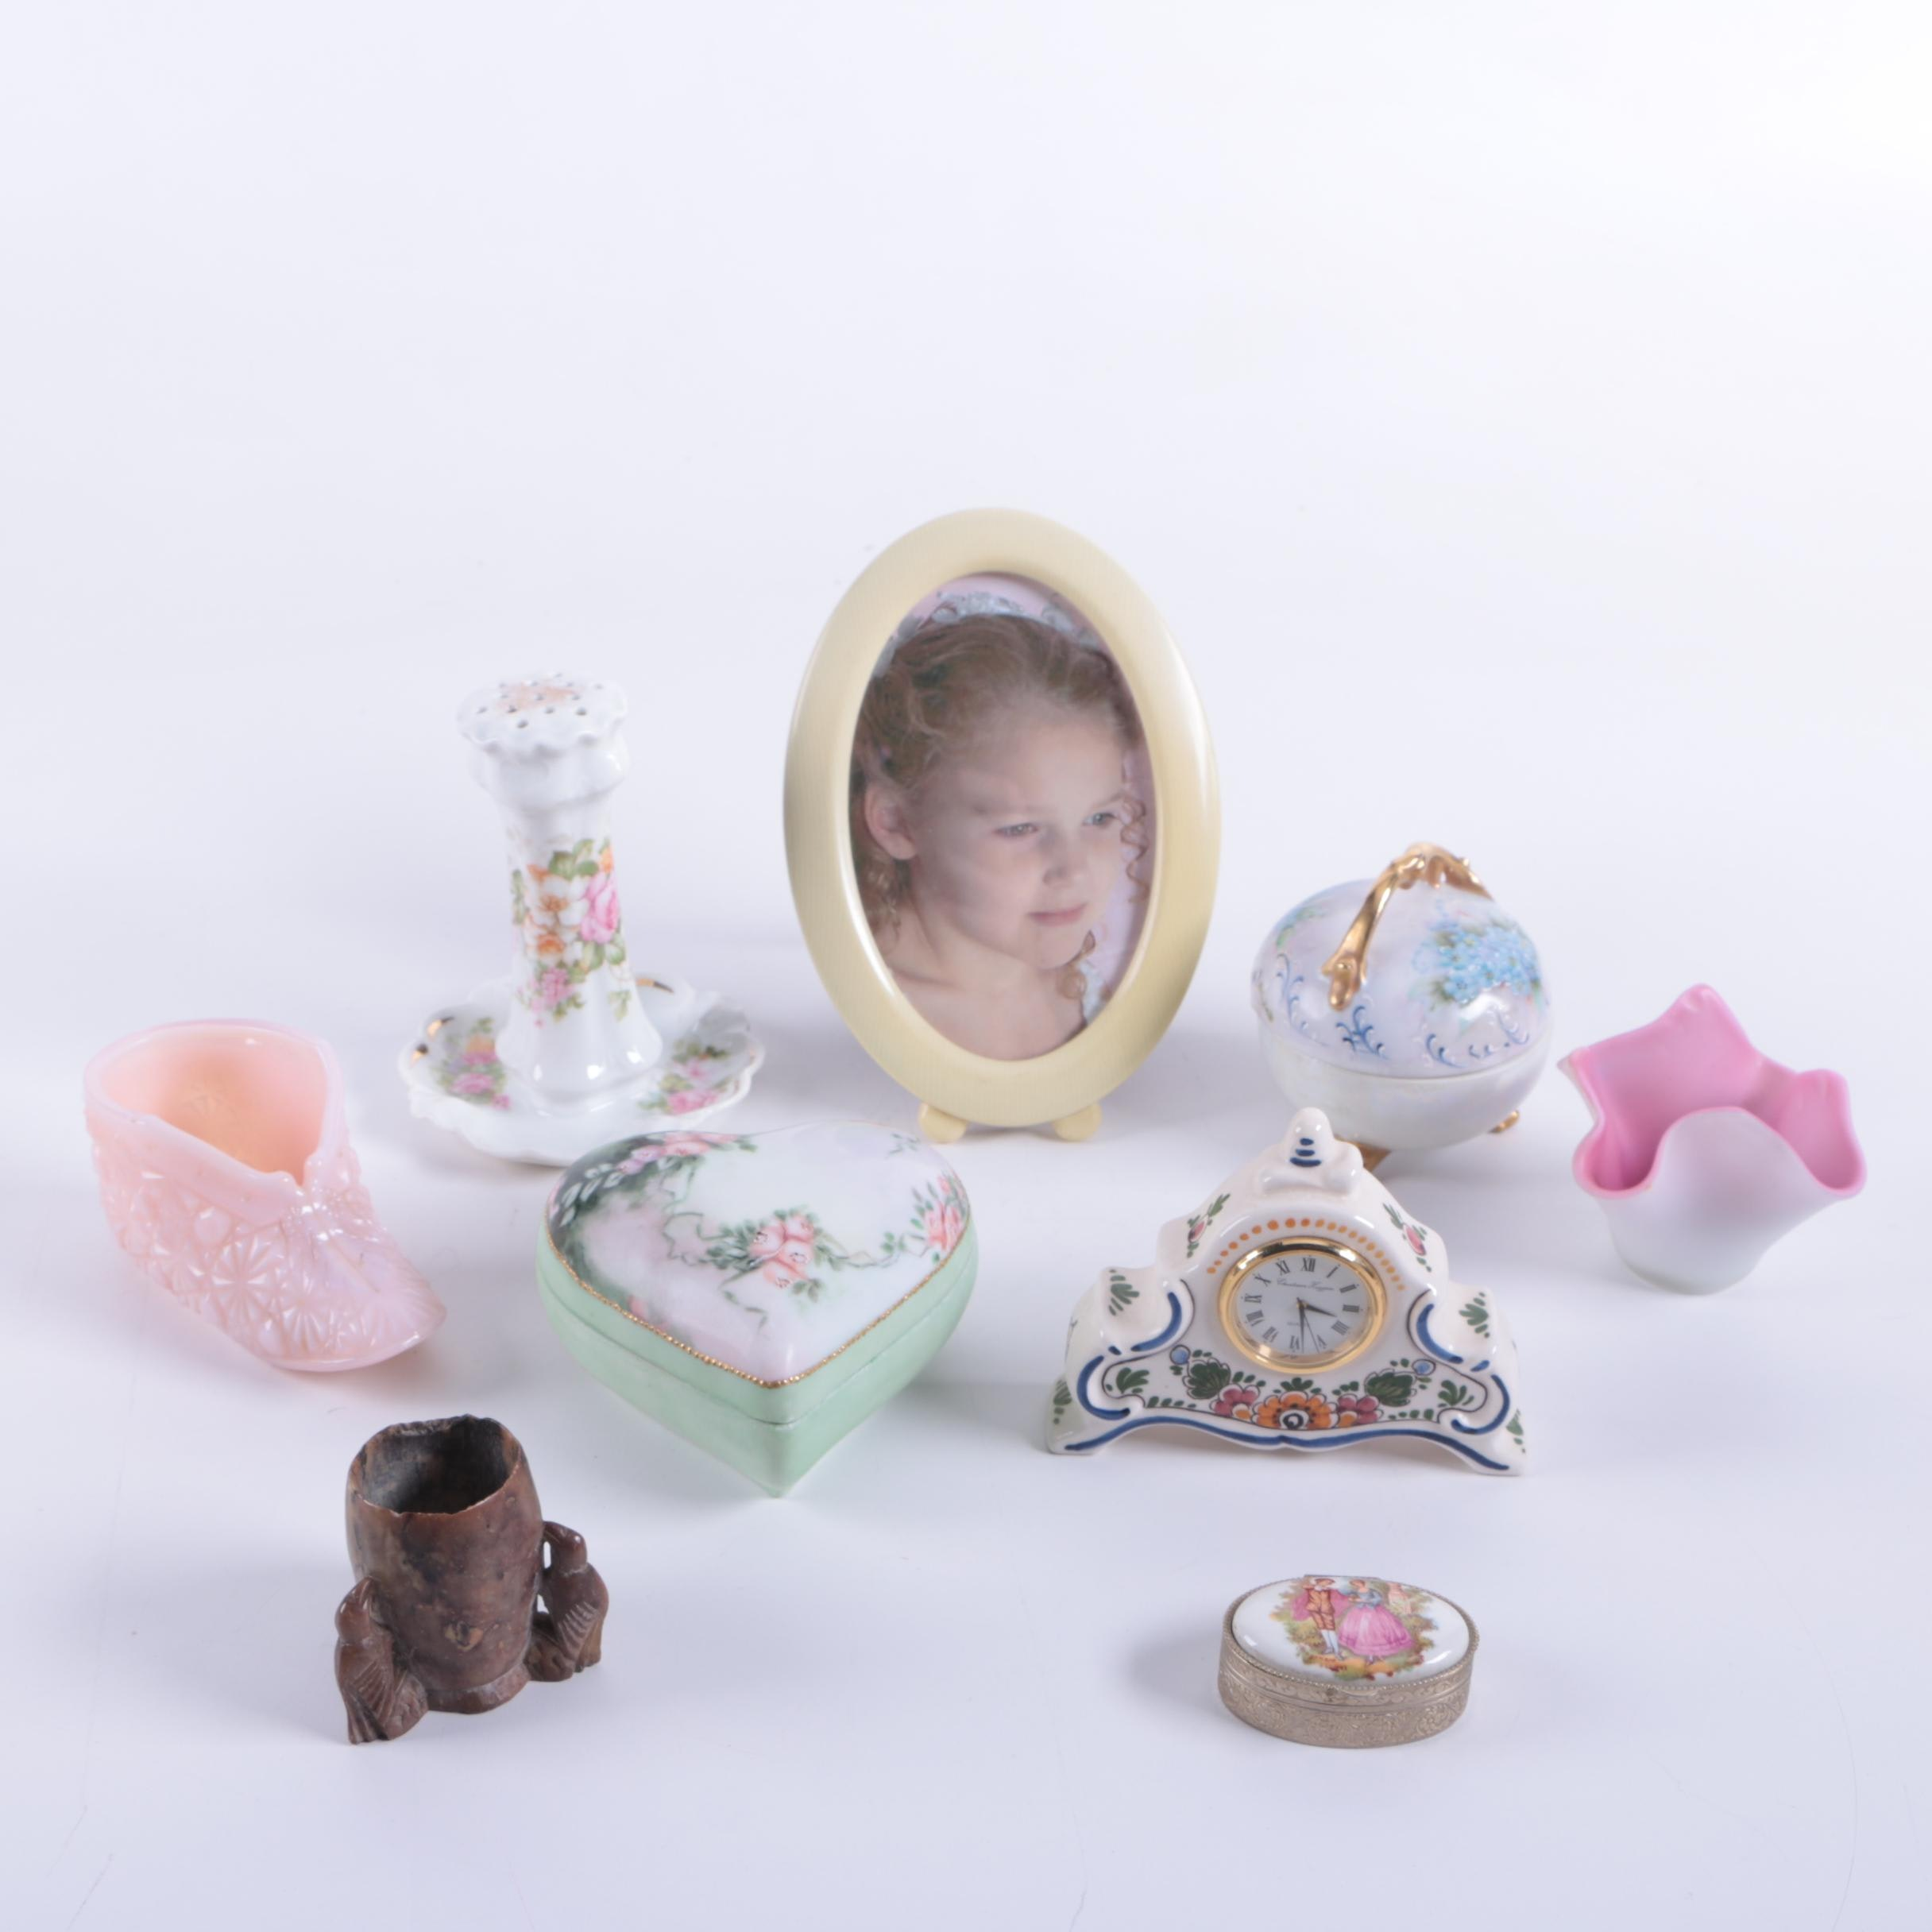 Assortment of Décor including a Picture Frame and Trinket Boxes